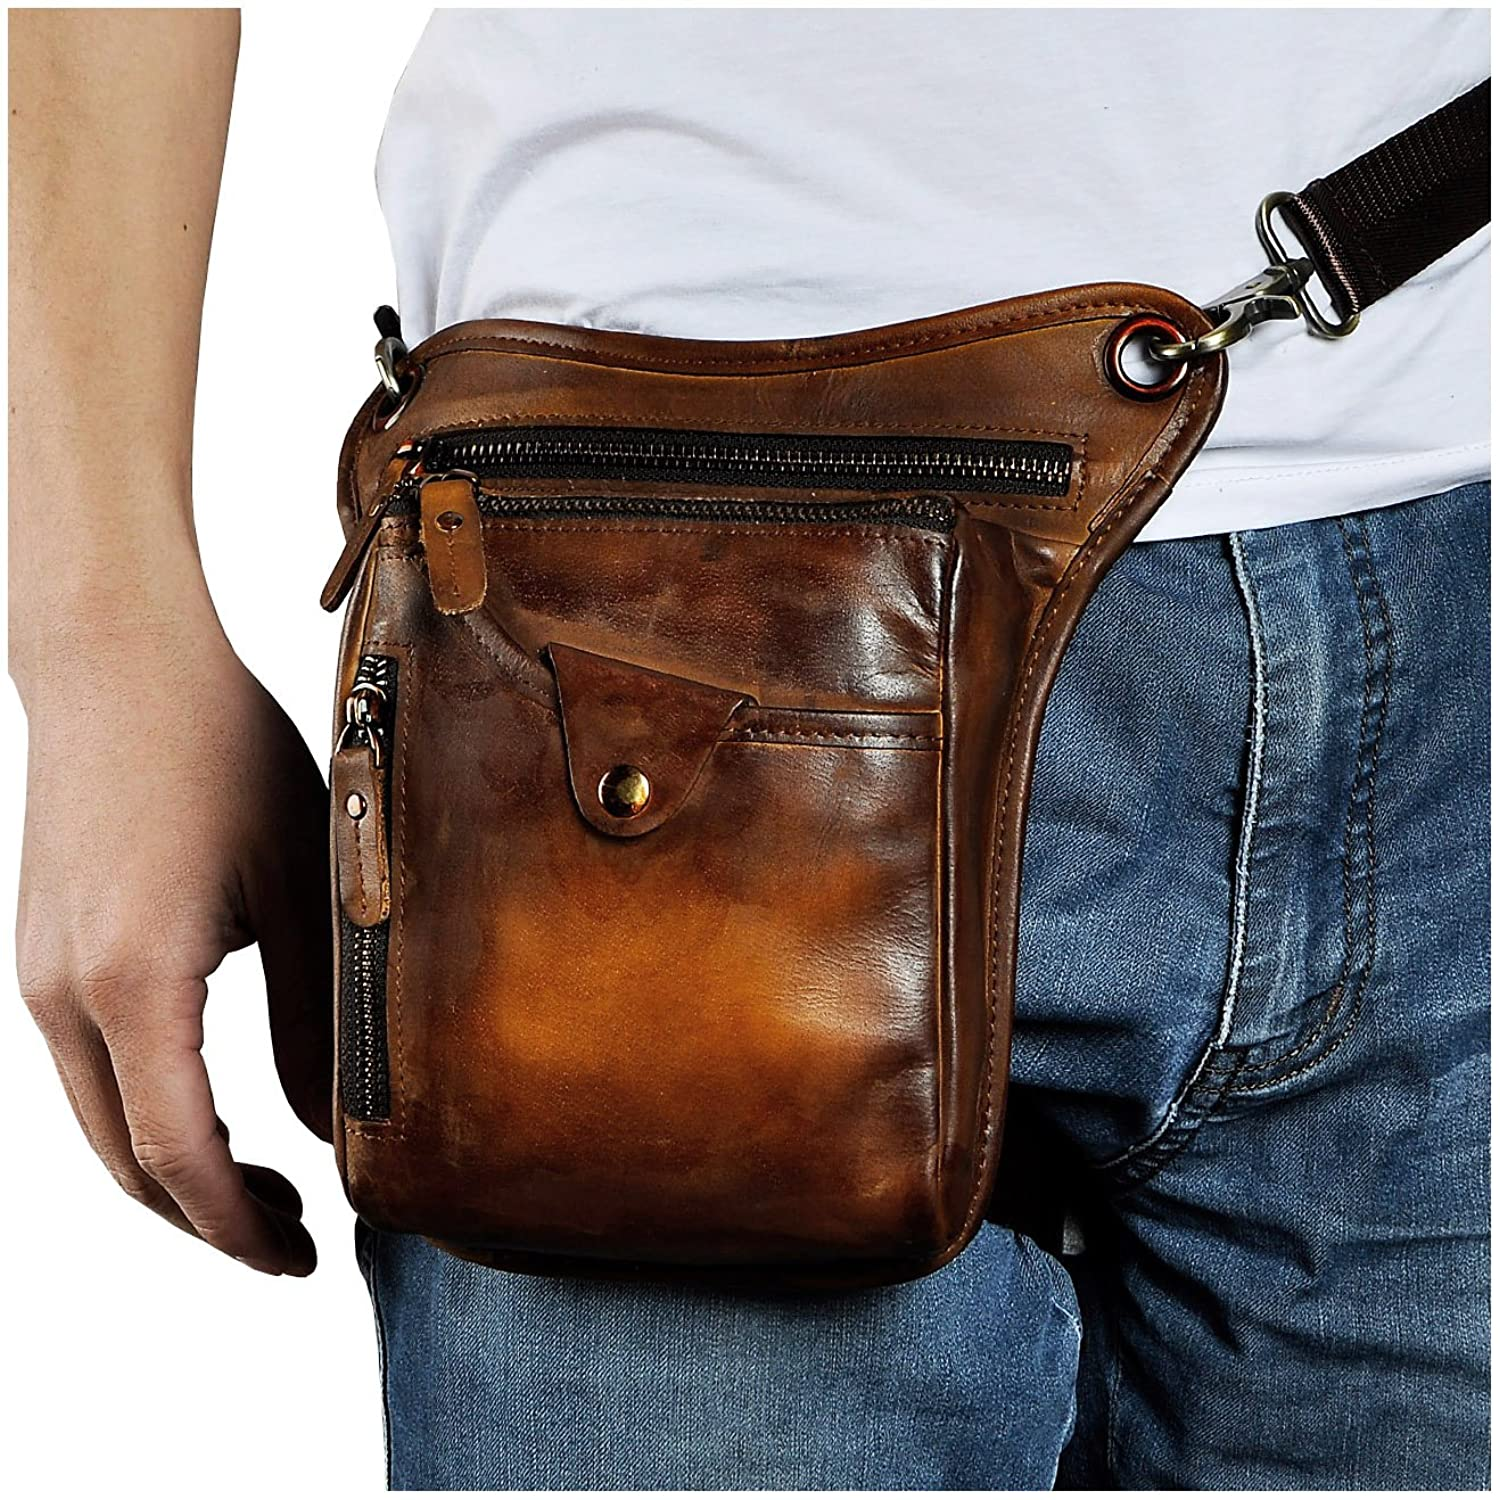 Le'aokuu Mens Quality Leather High Fashion Multifunction Travel Messenger Shoulder Sling Bag Motorcycle Hunting Gym Organizer Sport Hiking Belt Waist Pack Pouch Drop Leg Bag With Leg Strap 211-5